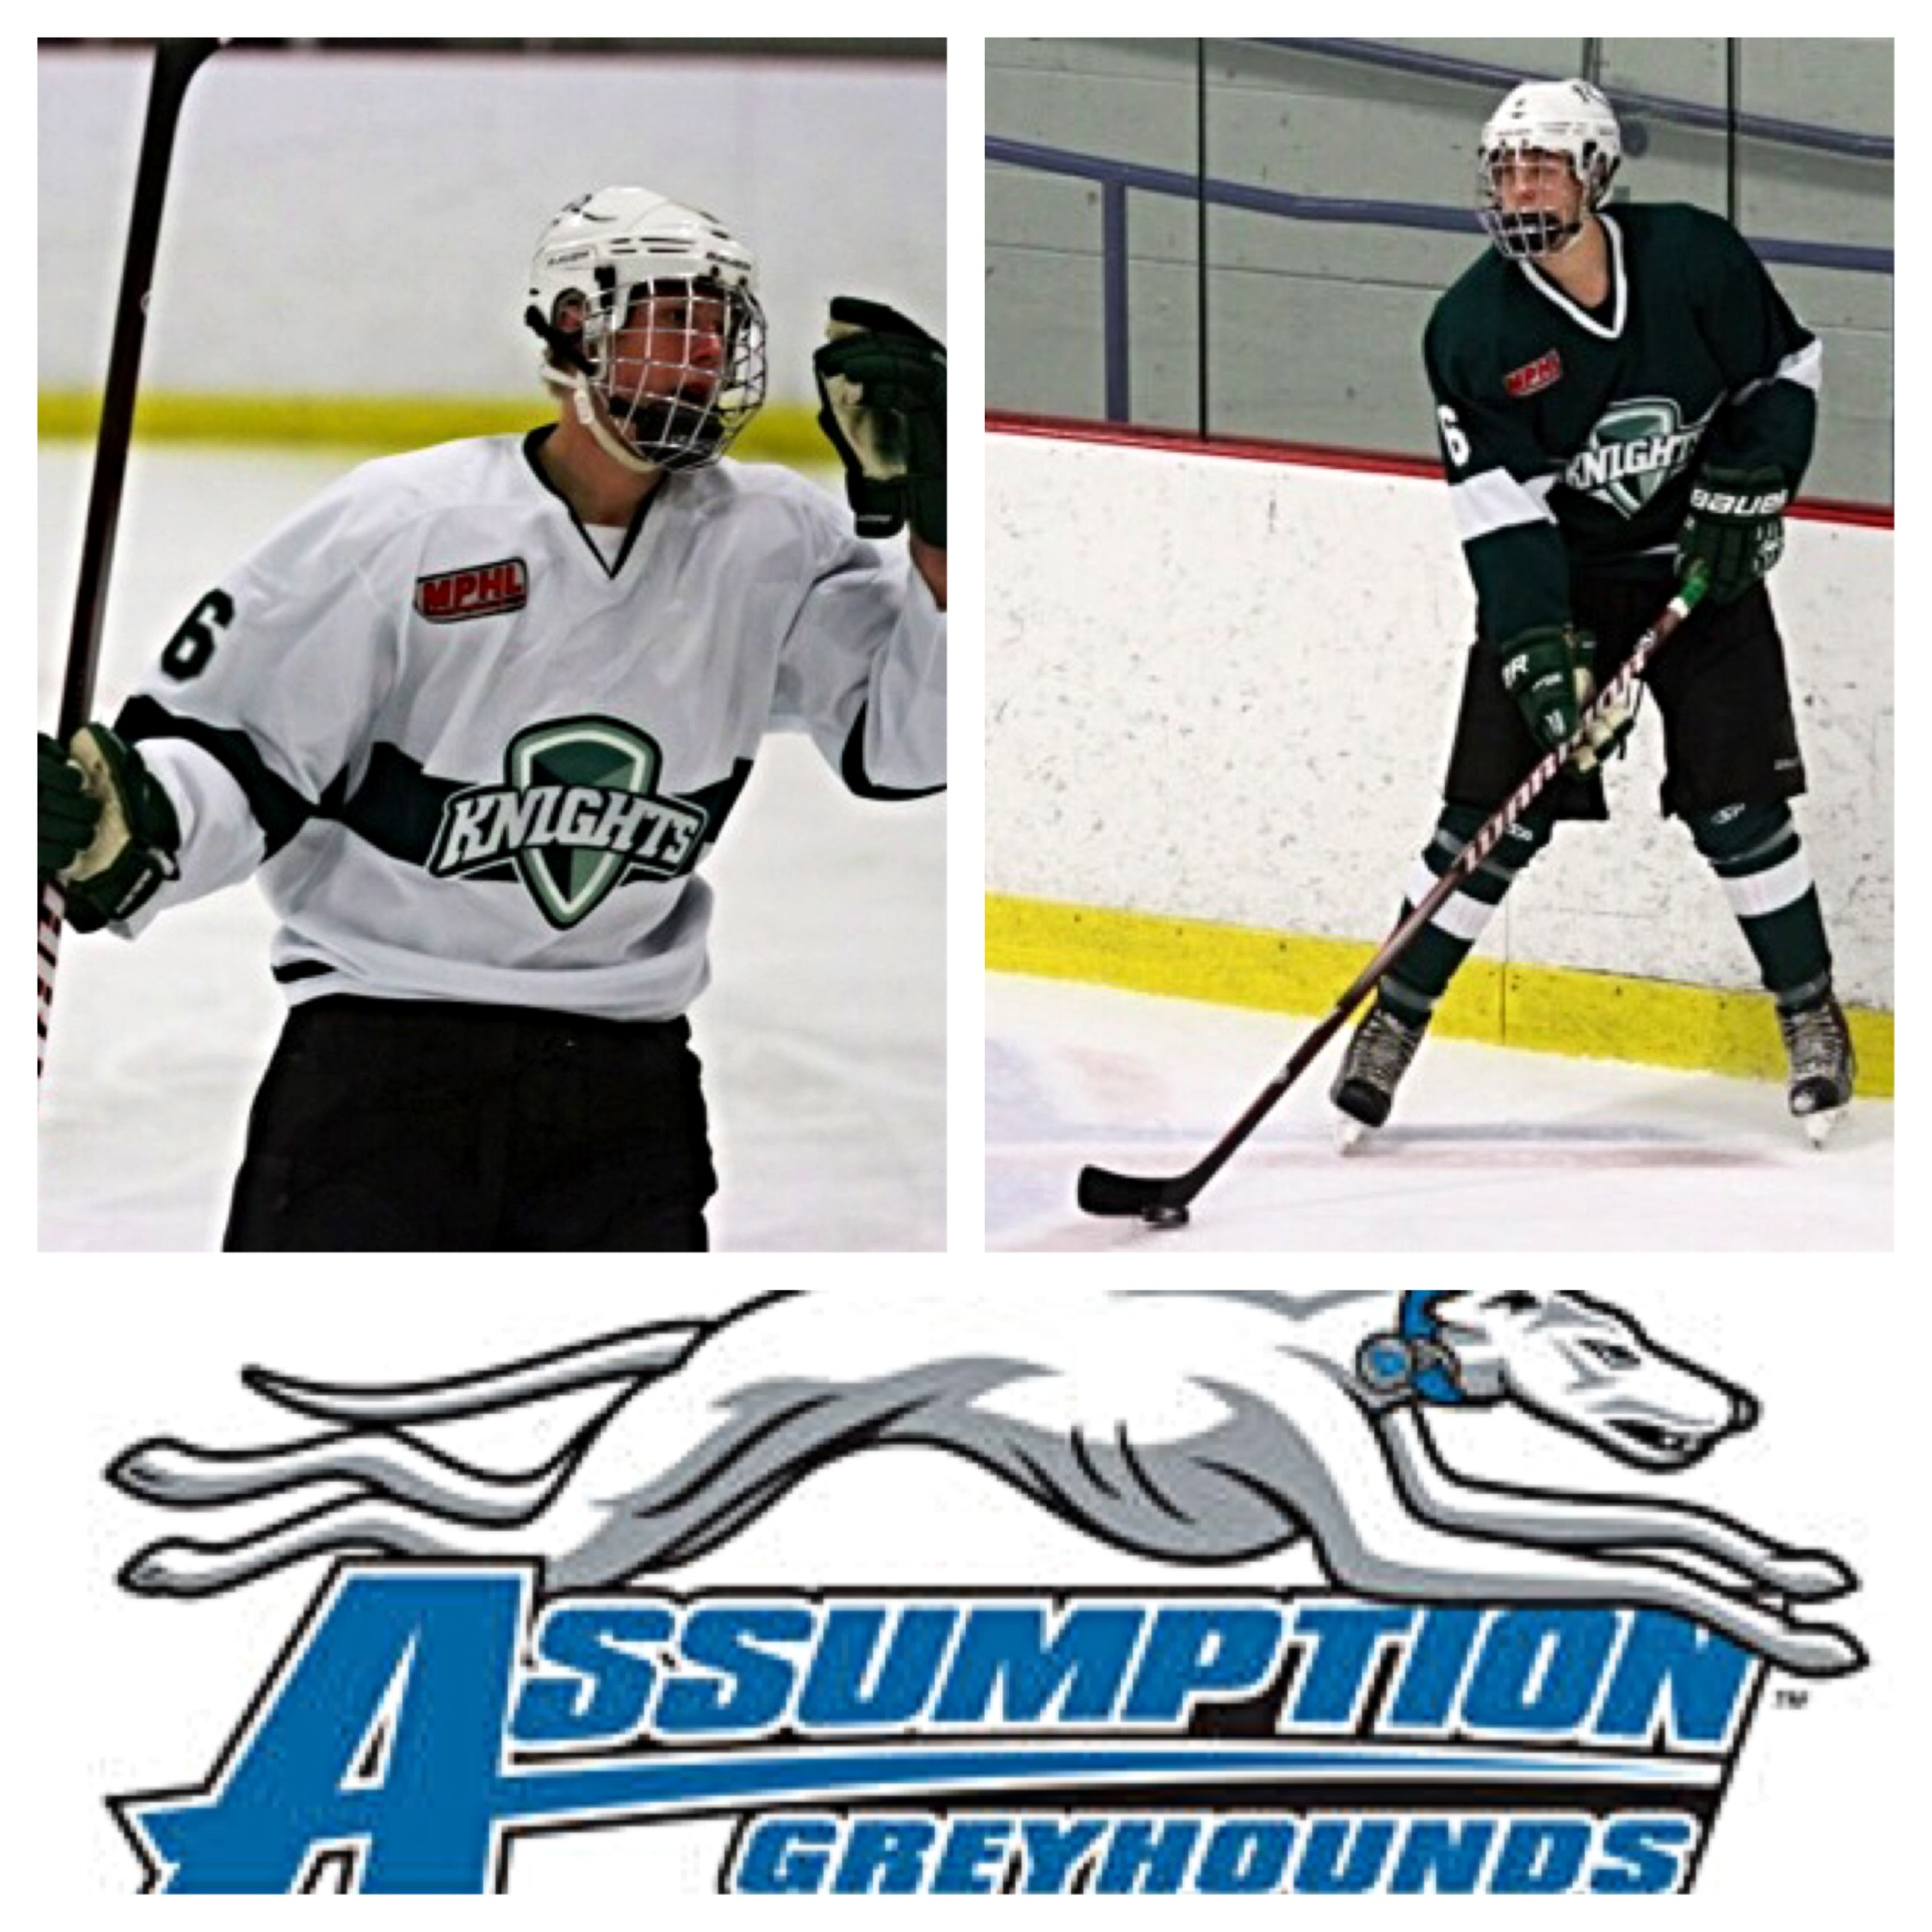 kauppinen commits to assumption college rice prep q why did you choose assumption college